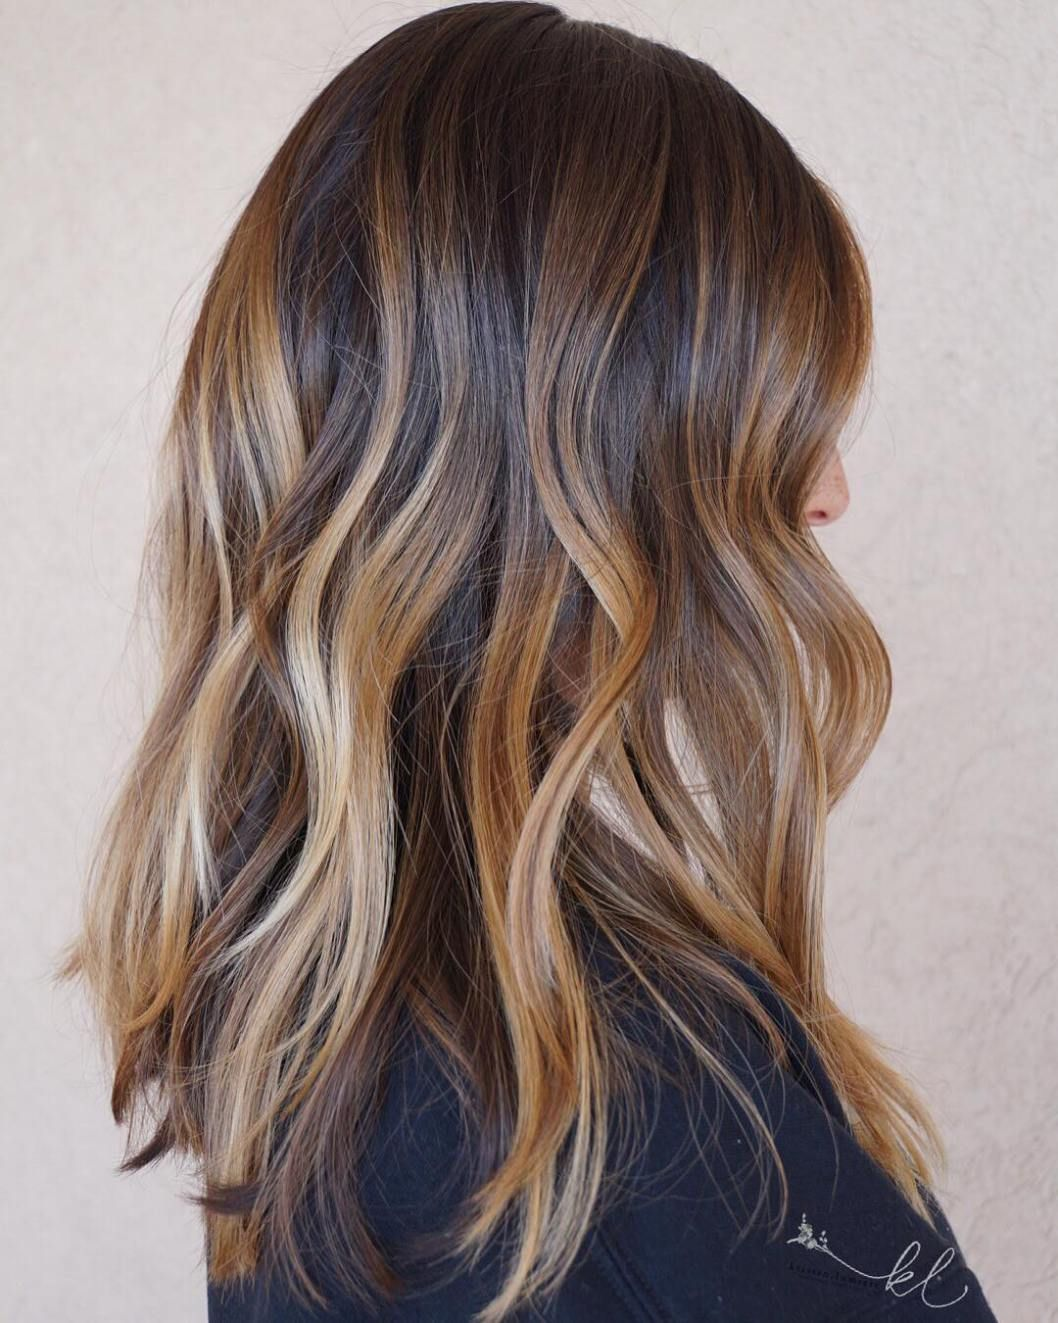 20 sweet caramel balayage hairstyles for brunettes and. Black Bedroom Furniture Sets. Home Design Ideas